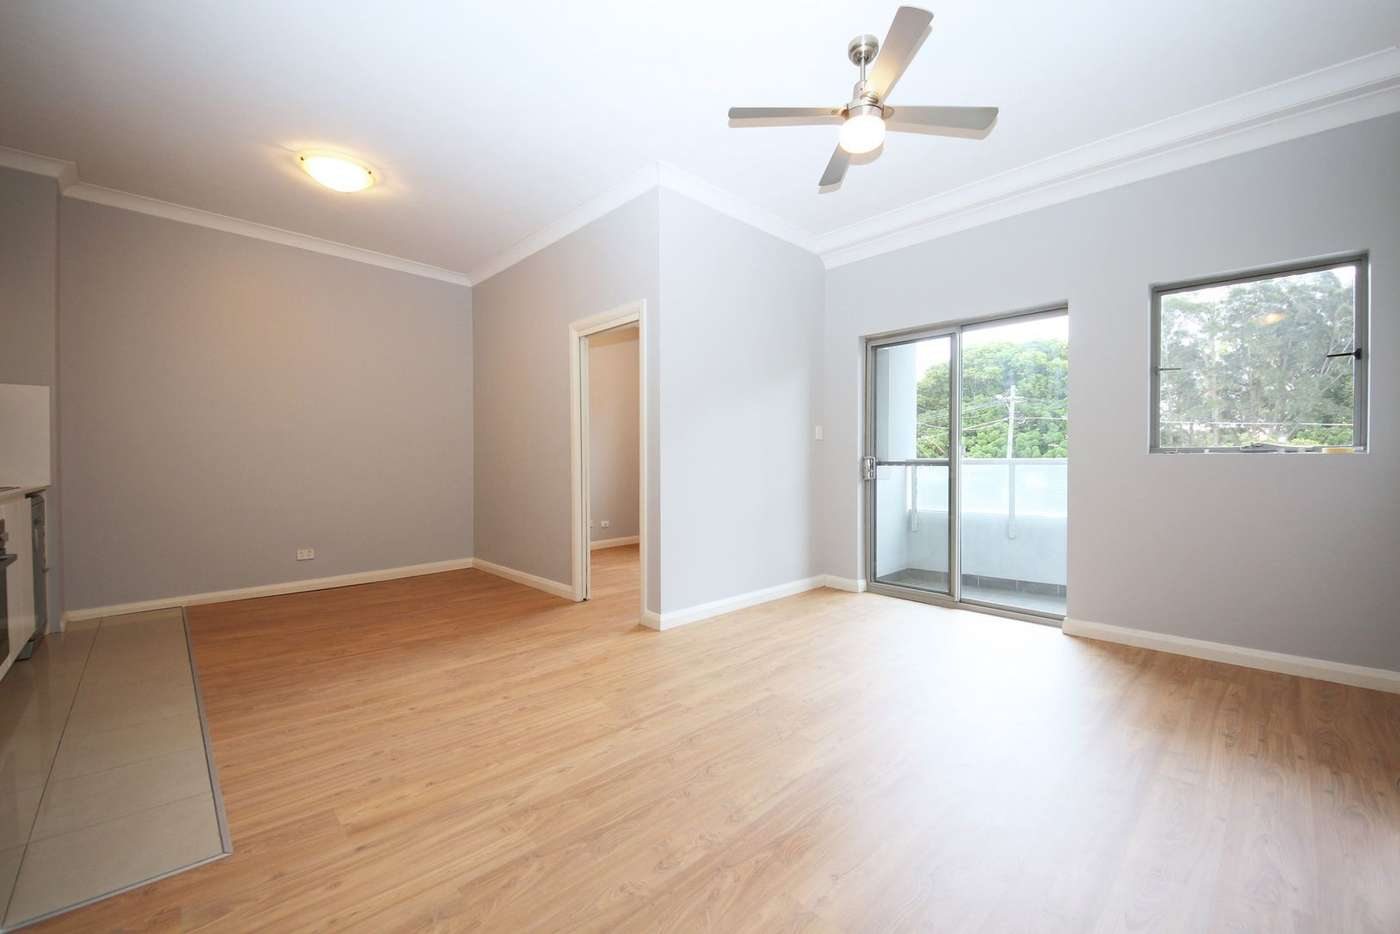 Main view of Homely apartment listing, 2/315 Bunnerong Road, Maroubra NSW 2035